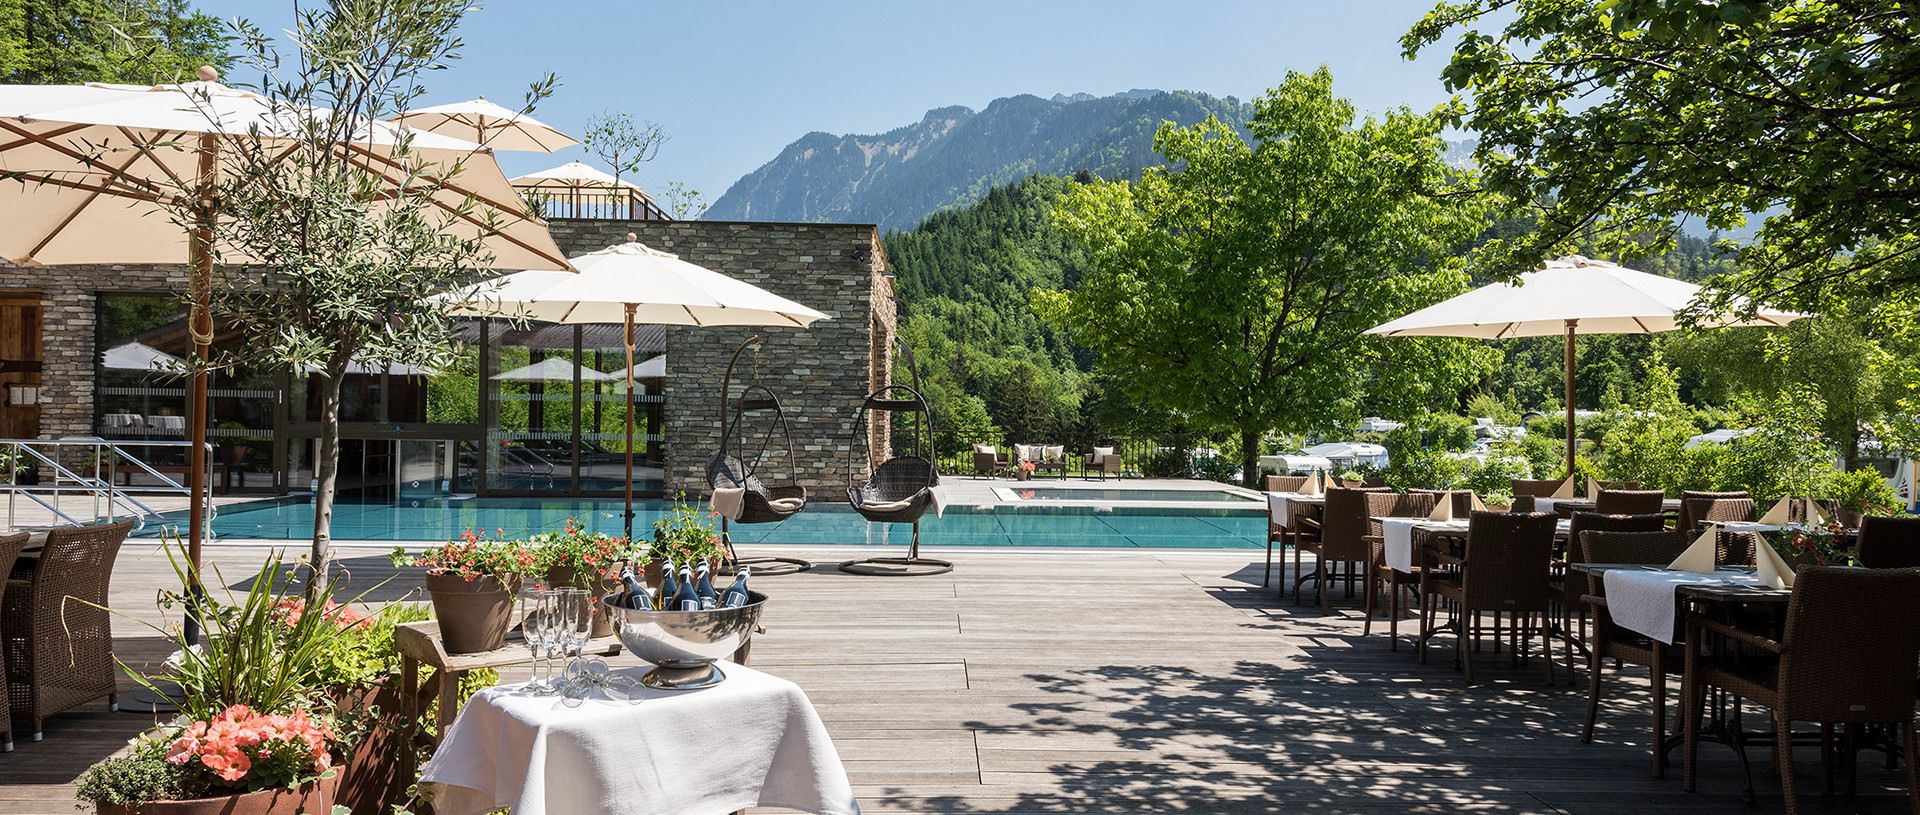 Spa camping on Vorarlberg's only Leading Camping site in Austria.